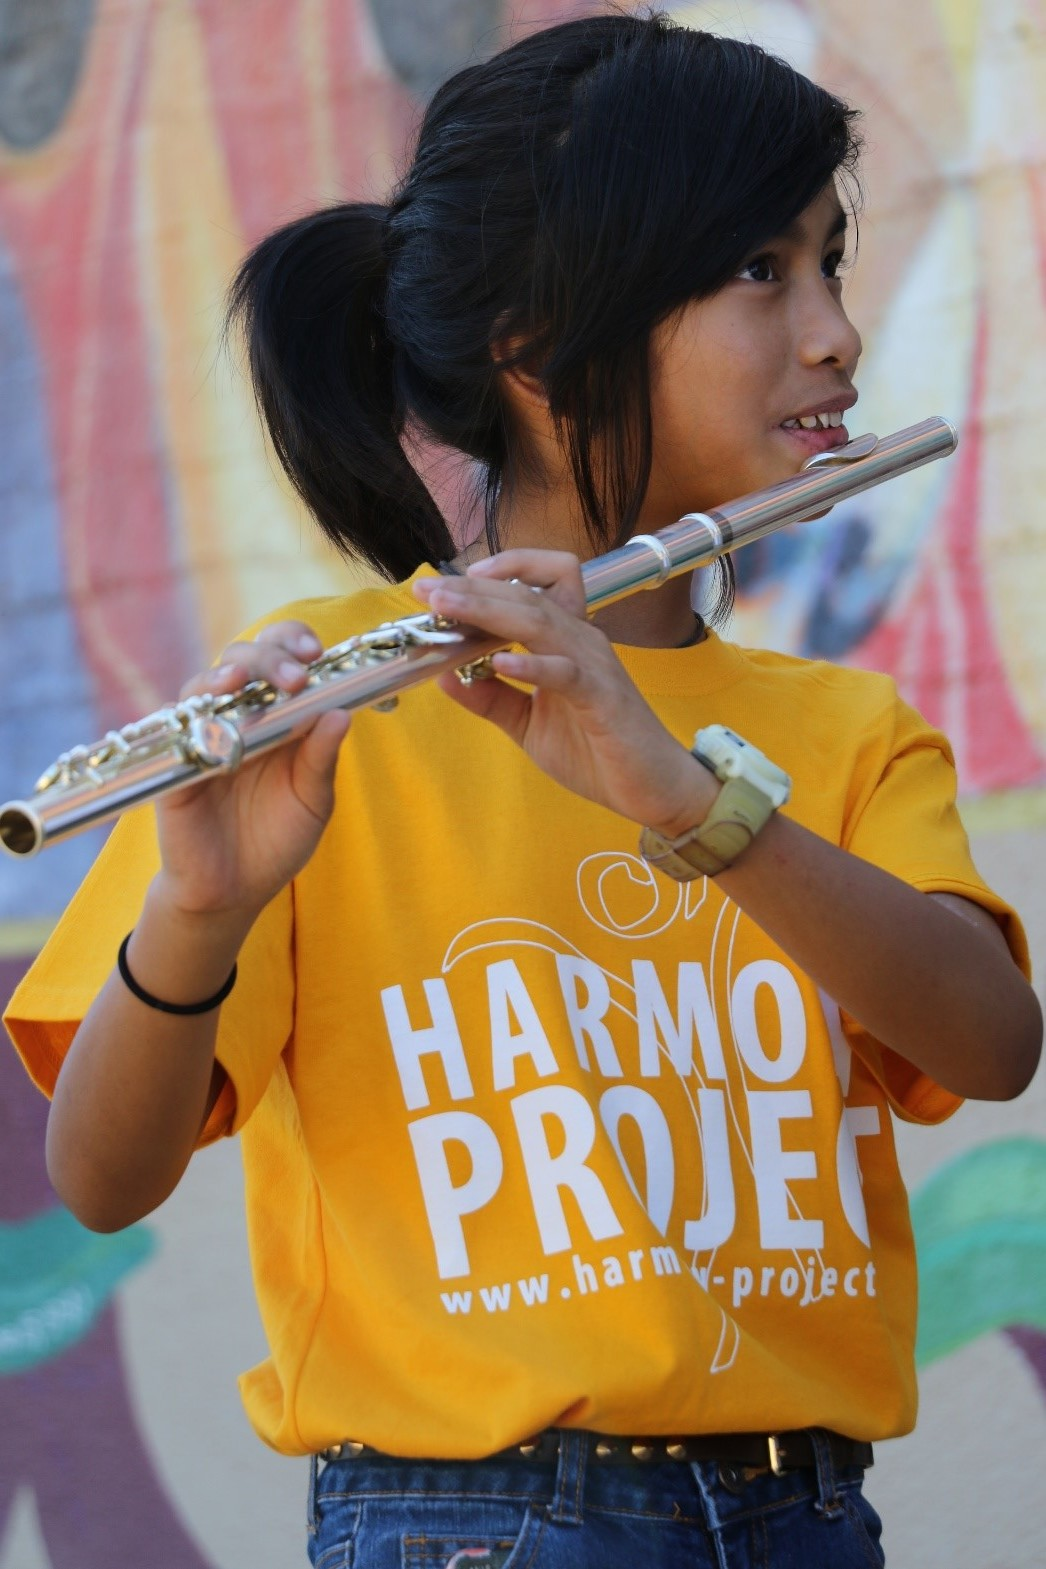 - This year, the Harmony Project LA will serve just shy of 3,000 students at its 13 different community sites. Through its affiliate programs, it will serve approximately 2,000 additional students nationwide. Despite high levels of student transiency in its neighborhoods, it still retains 80% of its students from one year to the next.